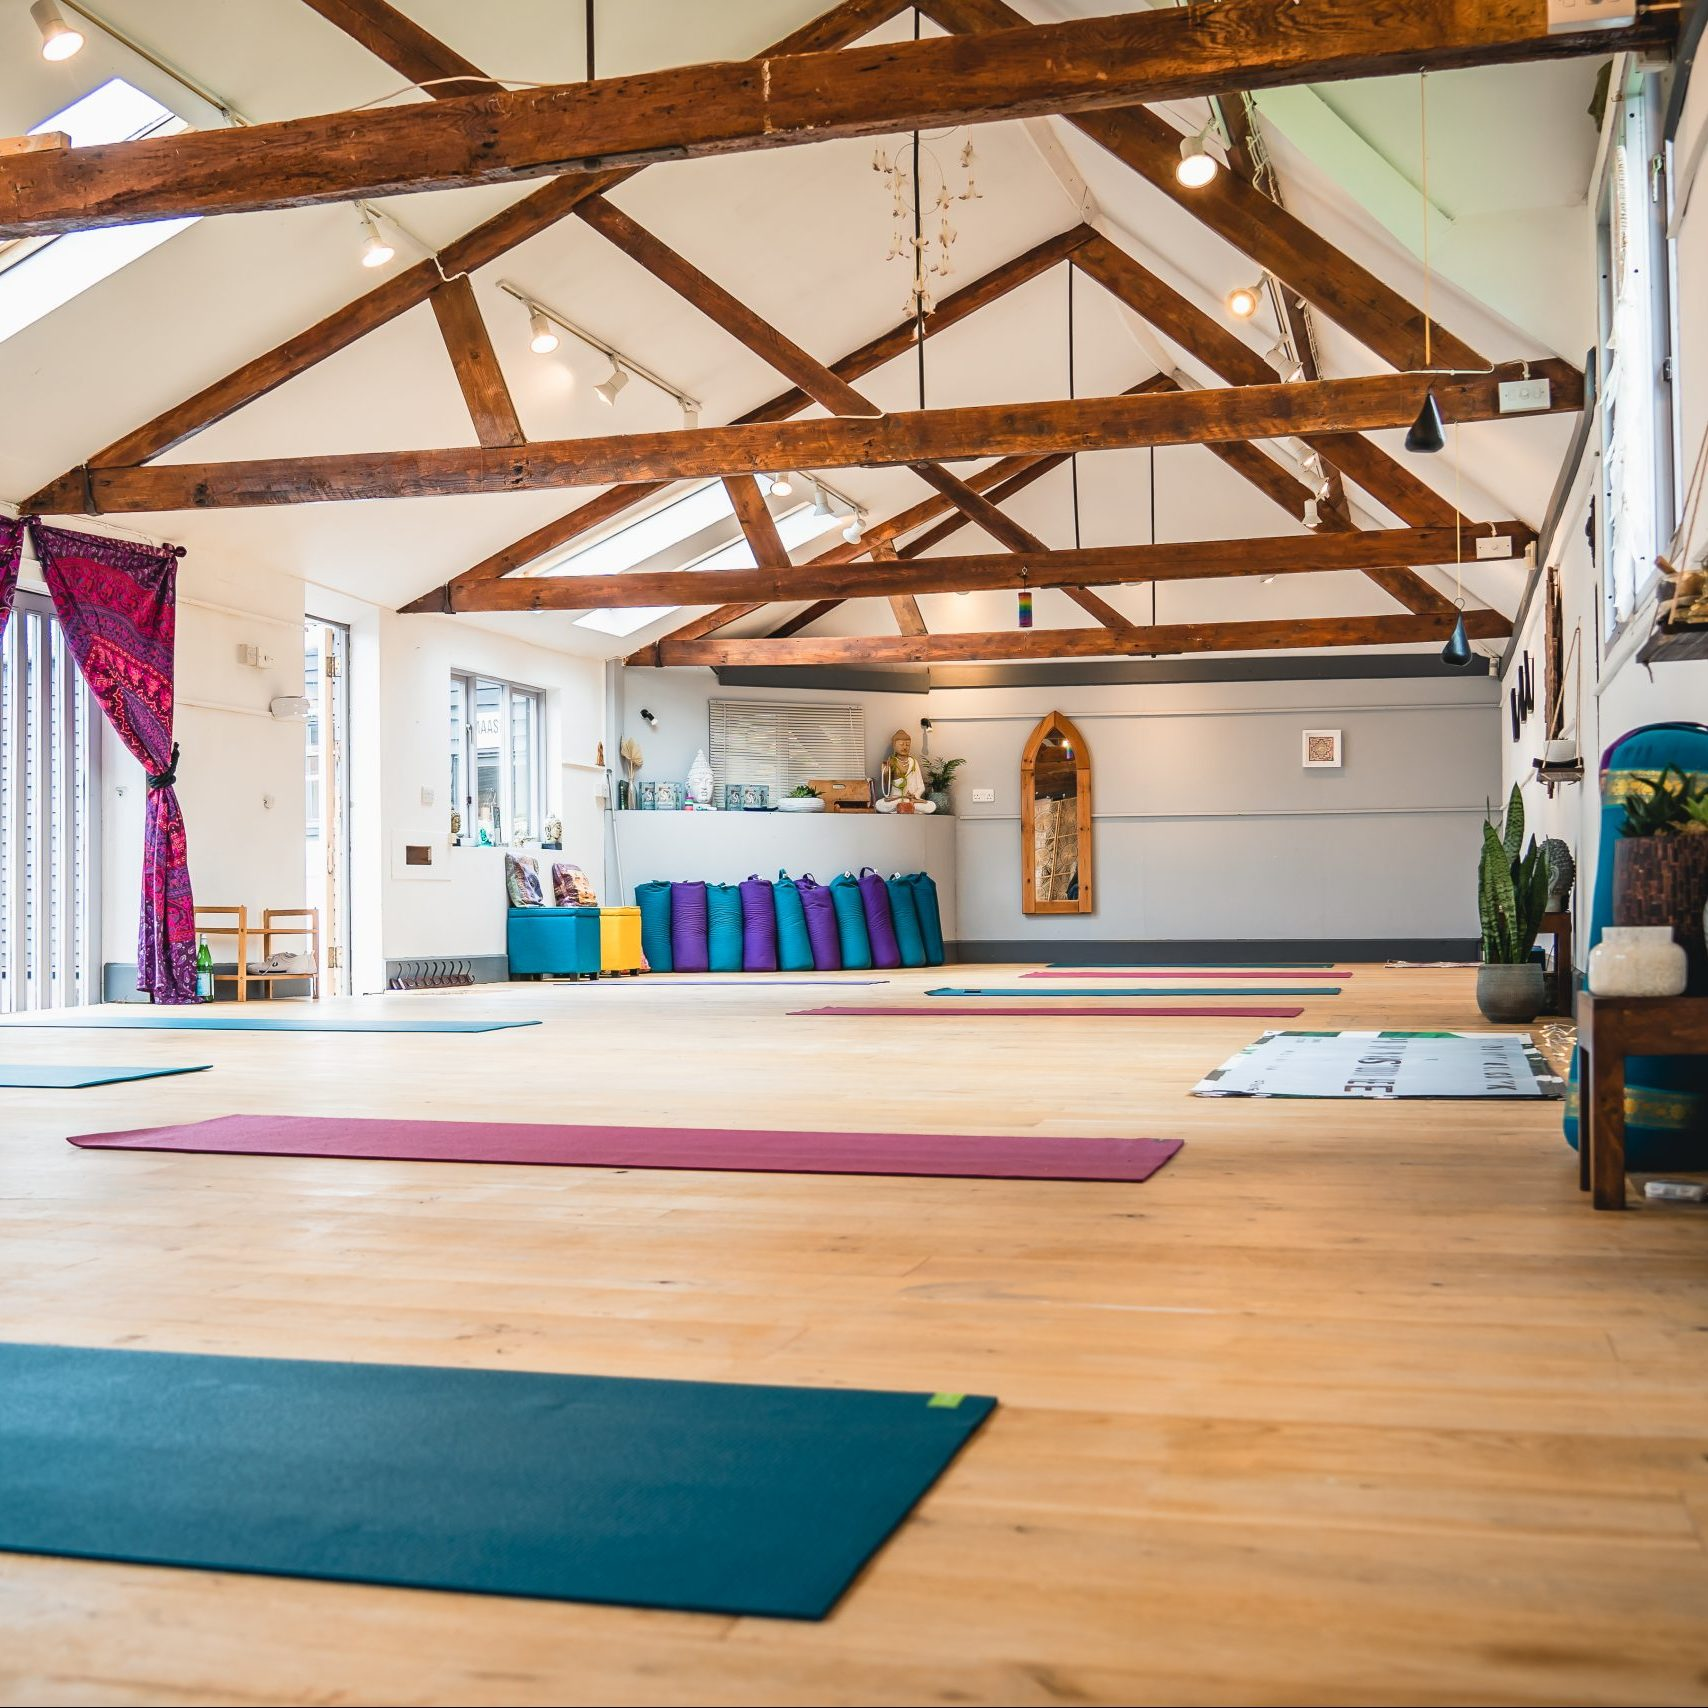 Image Result For Yoga Classes In Lincoln Uk